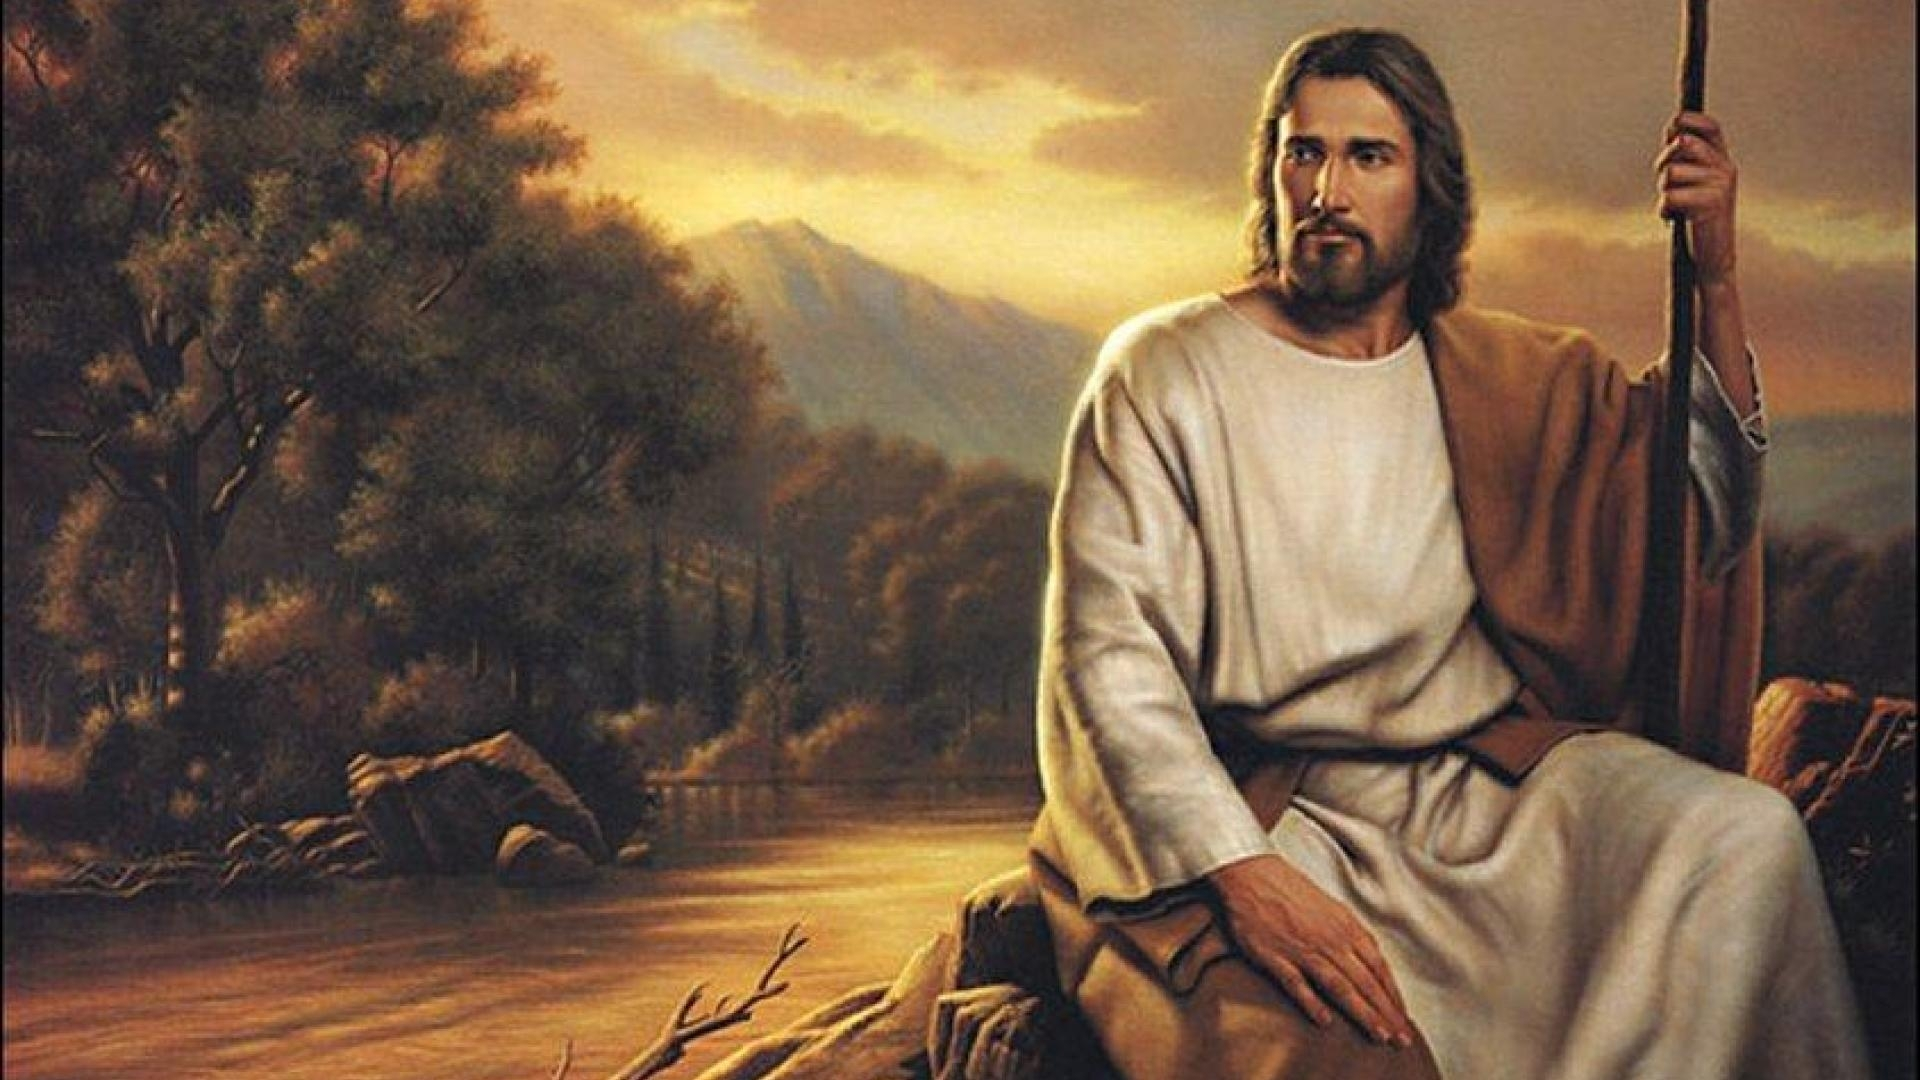 jesus christ wallpapers group with 68 items